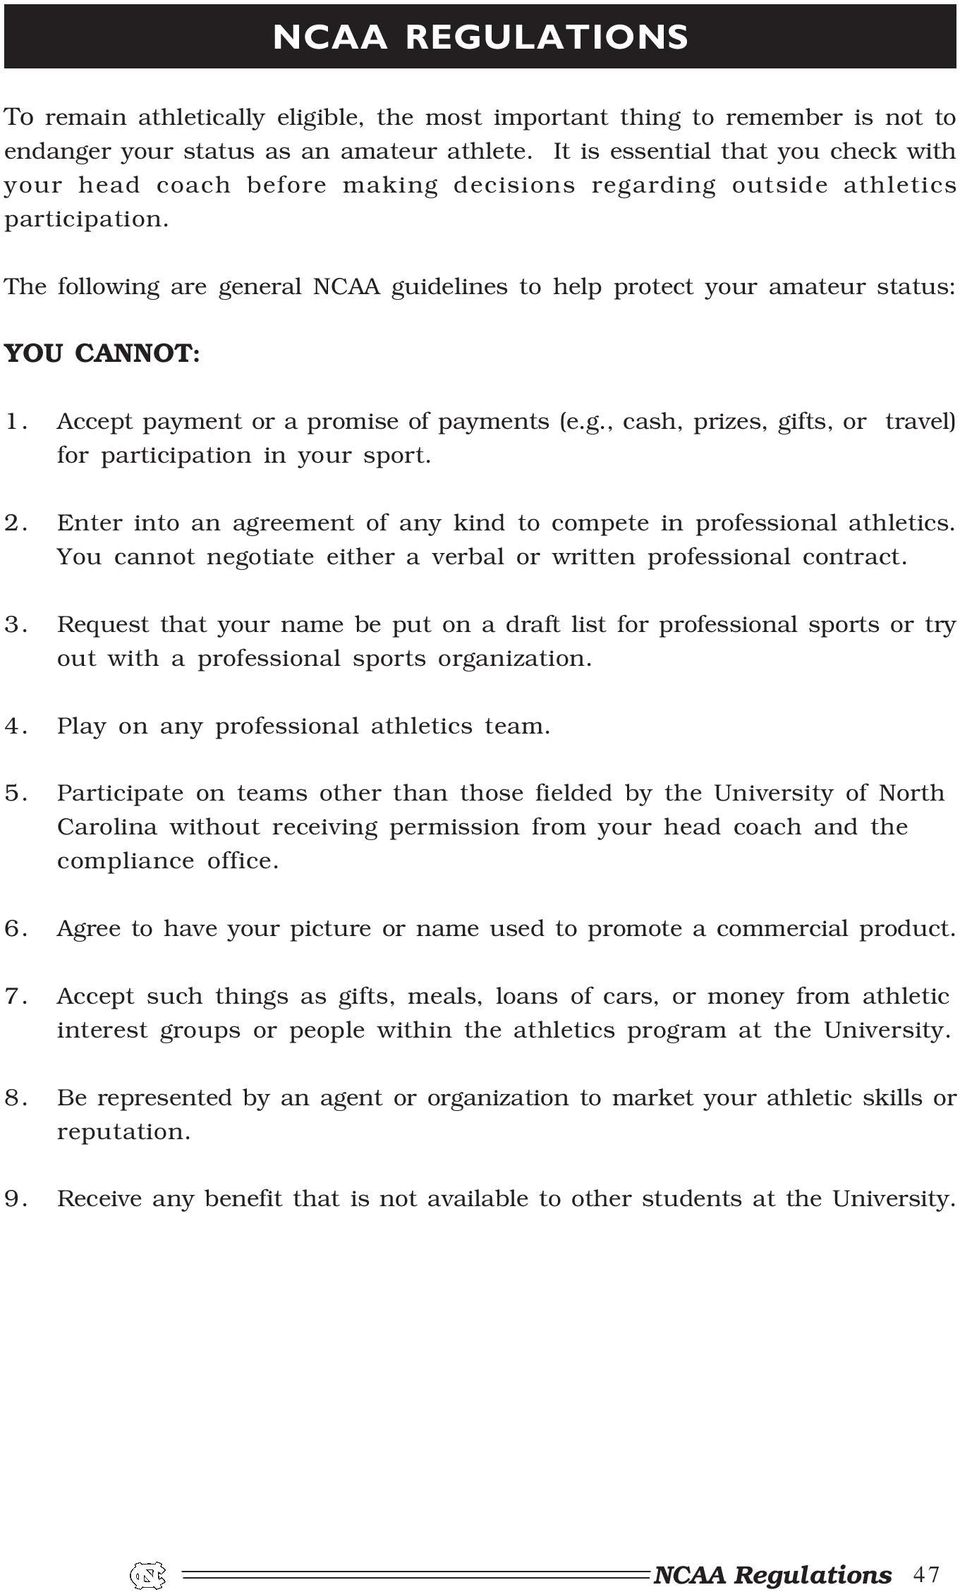 The following are general NCAA guidelines to help protect your amateur status: YOU CANNOT: 1. Accept payment or a promise of payments (e.g., cash, prizes, gifts, or travel) for participation in your sport.